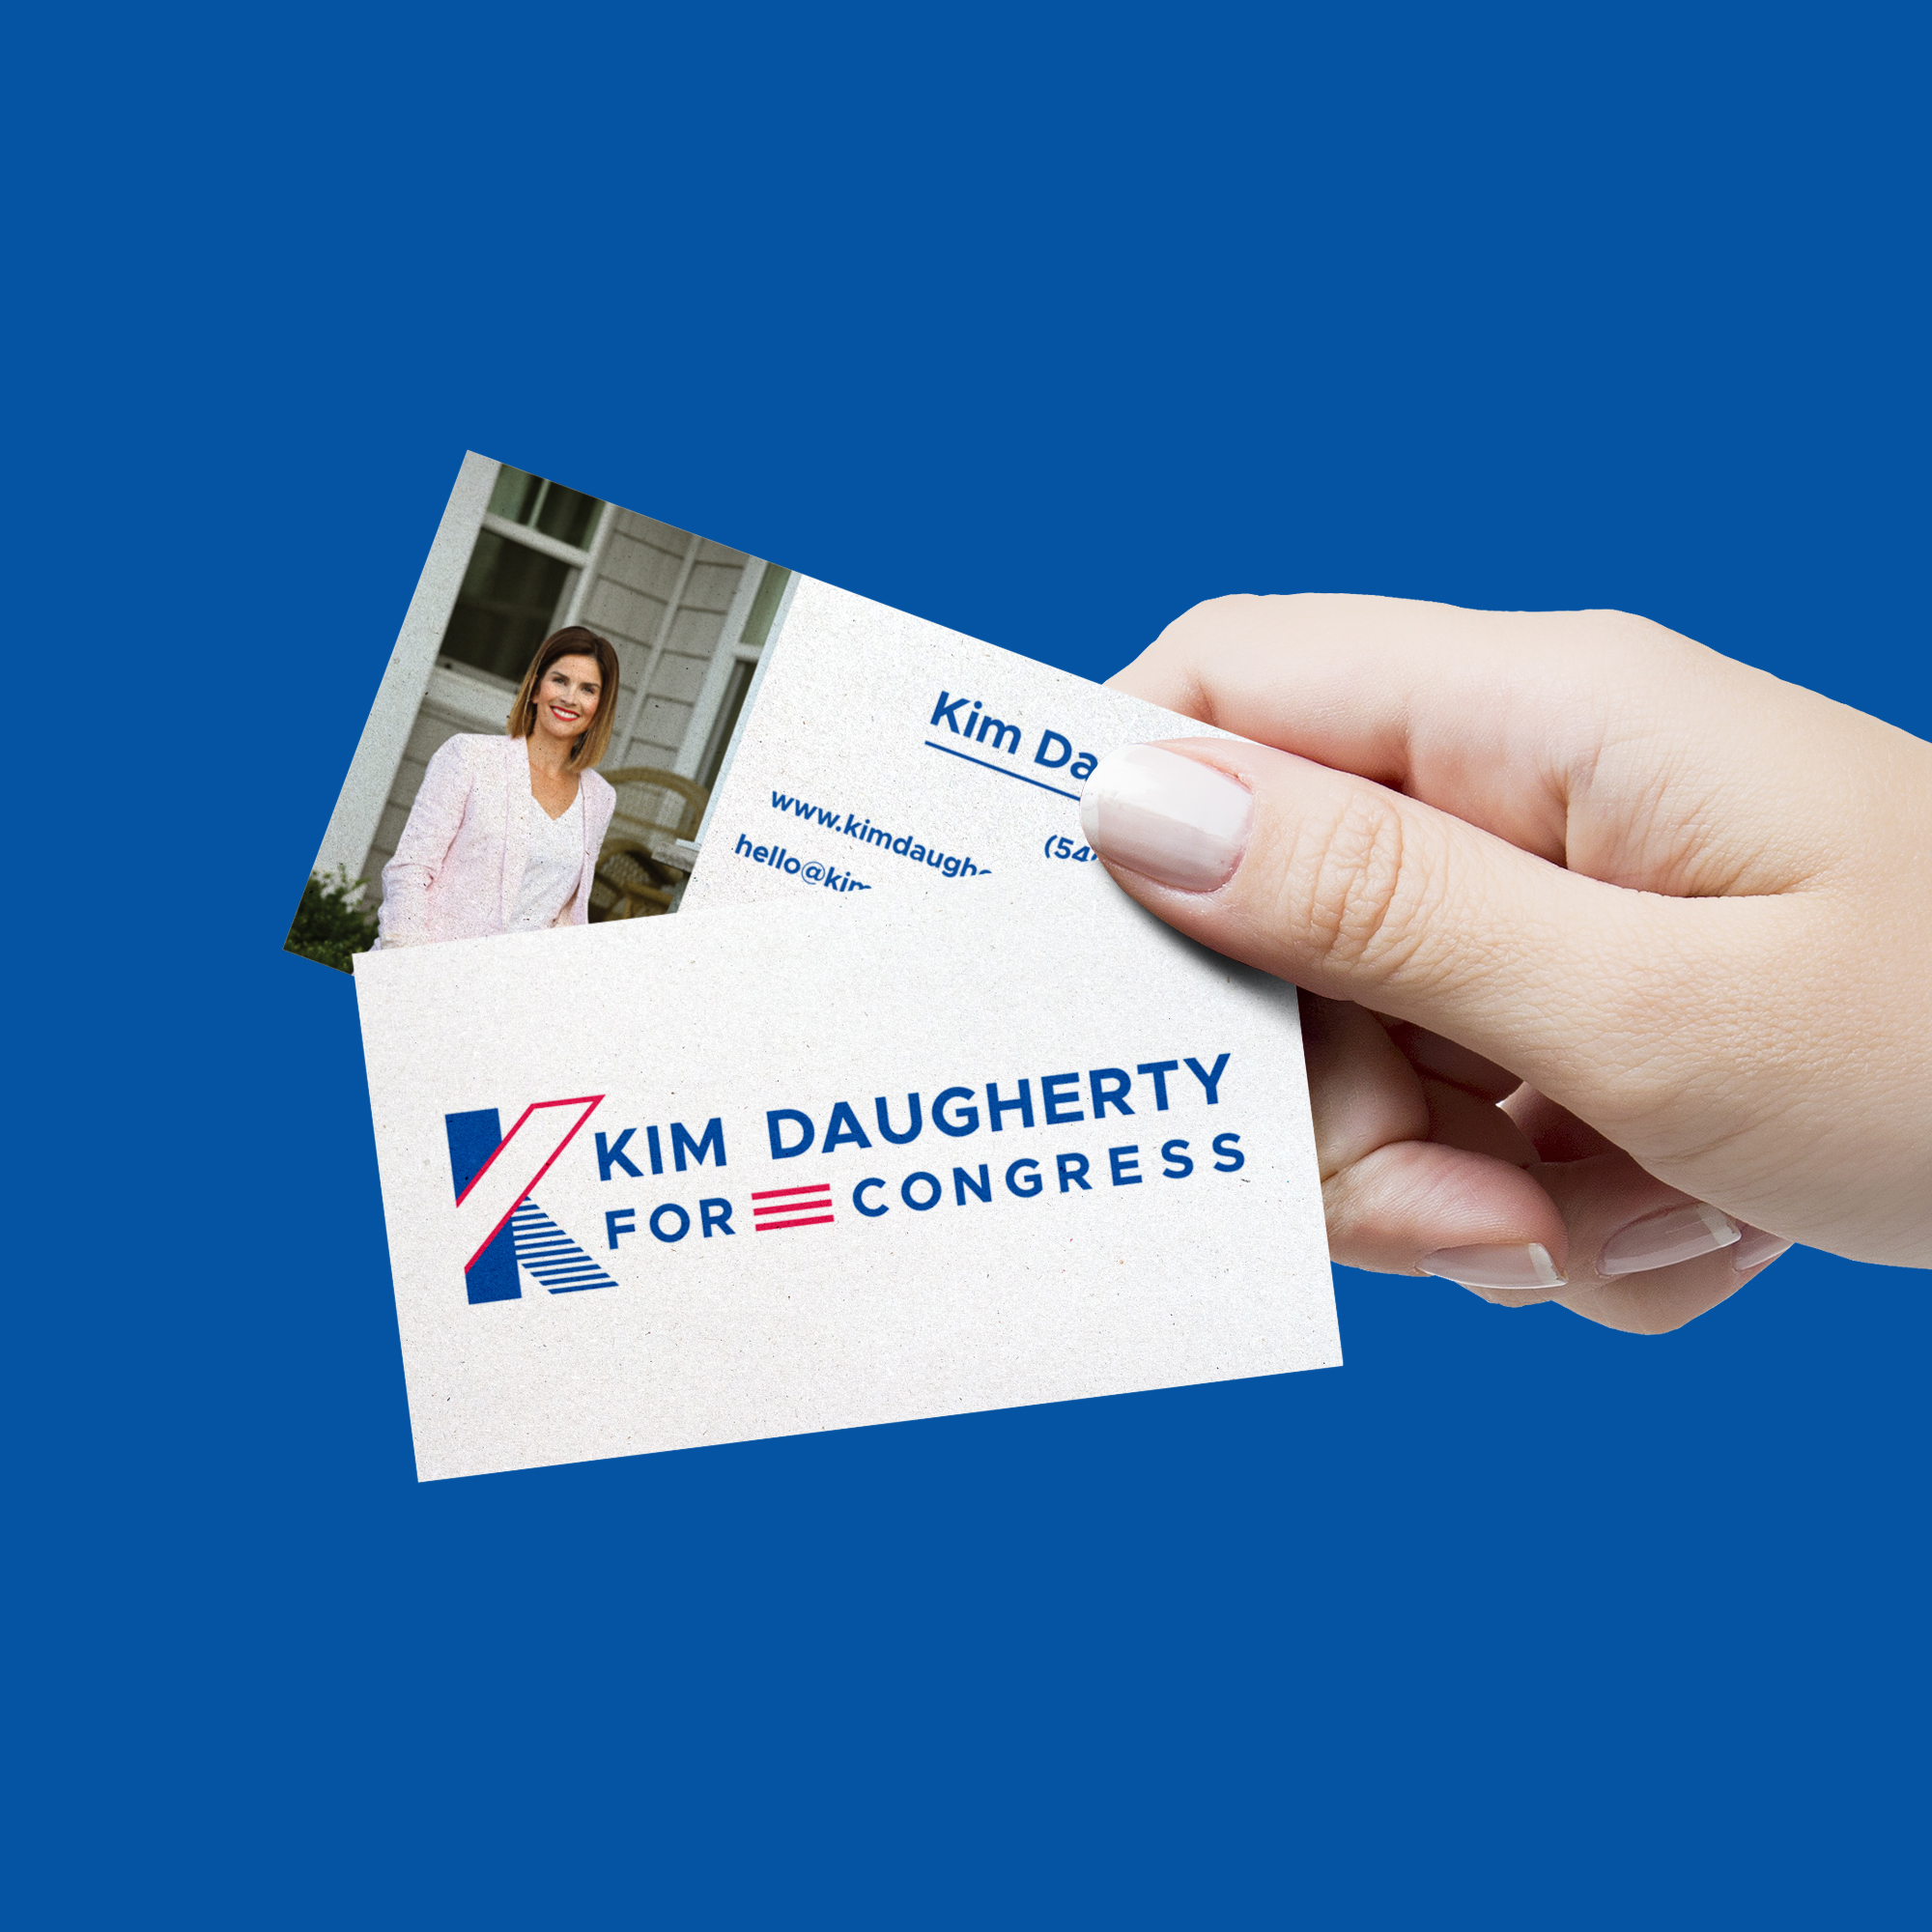 Kim Daugherty Business Cards #businesscards #businesscarddesign